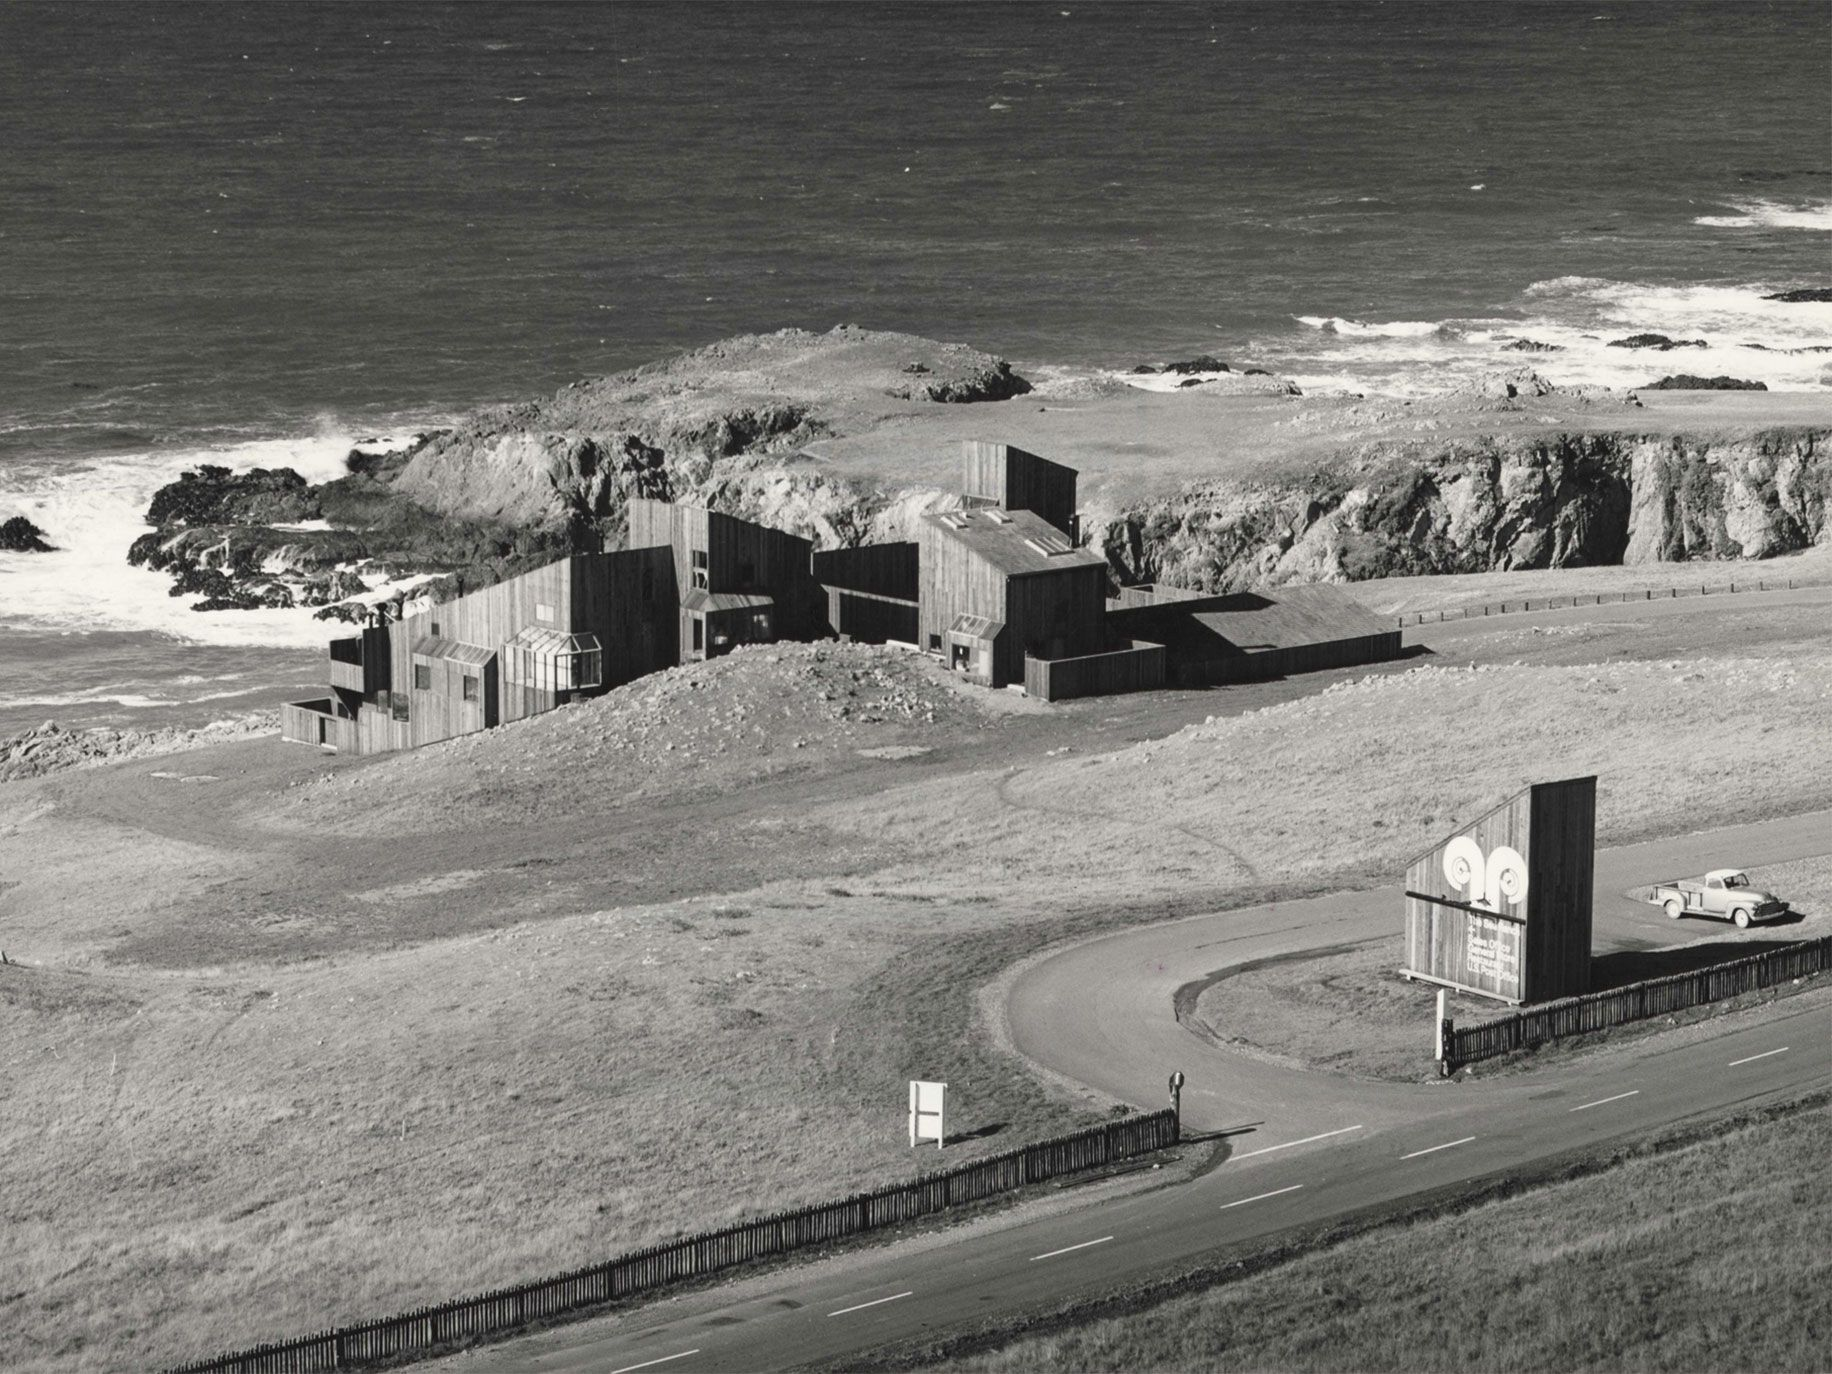 Located on a high bluff above the seashore, surrounded by open space, Condominium One required a design for a clustered mass rather than individual units sprinkled across a landscape. The marker building in the foreground along Highway 1 was photographed in 1965.